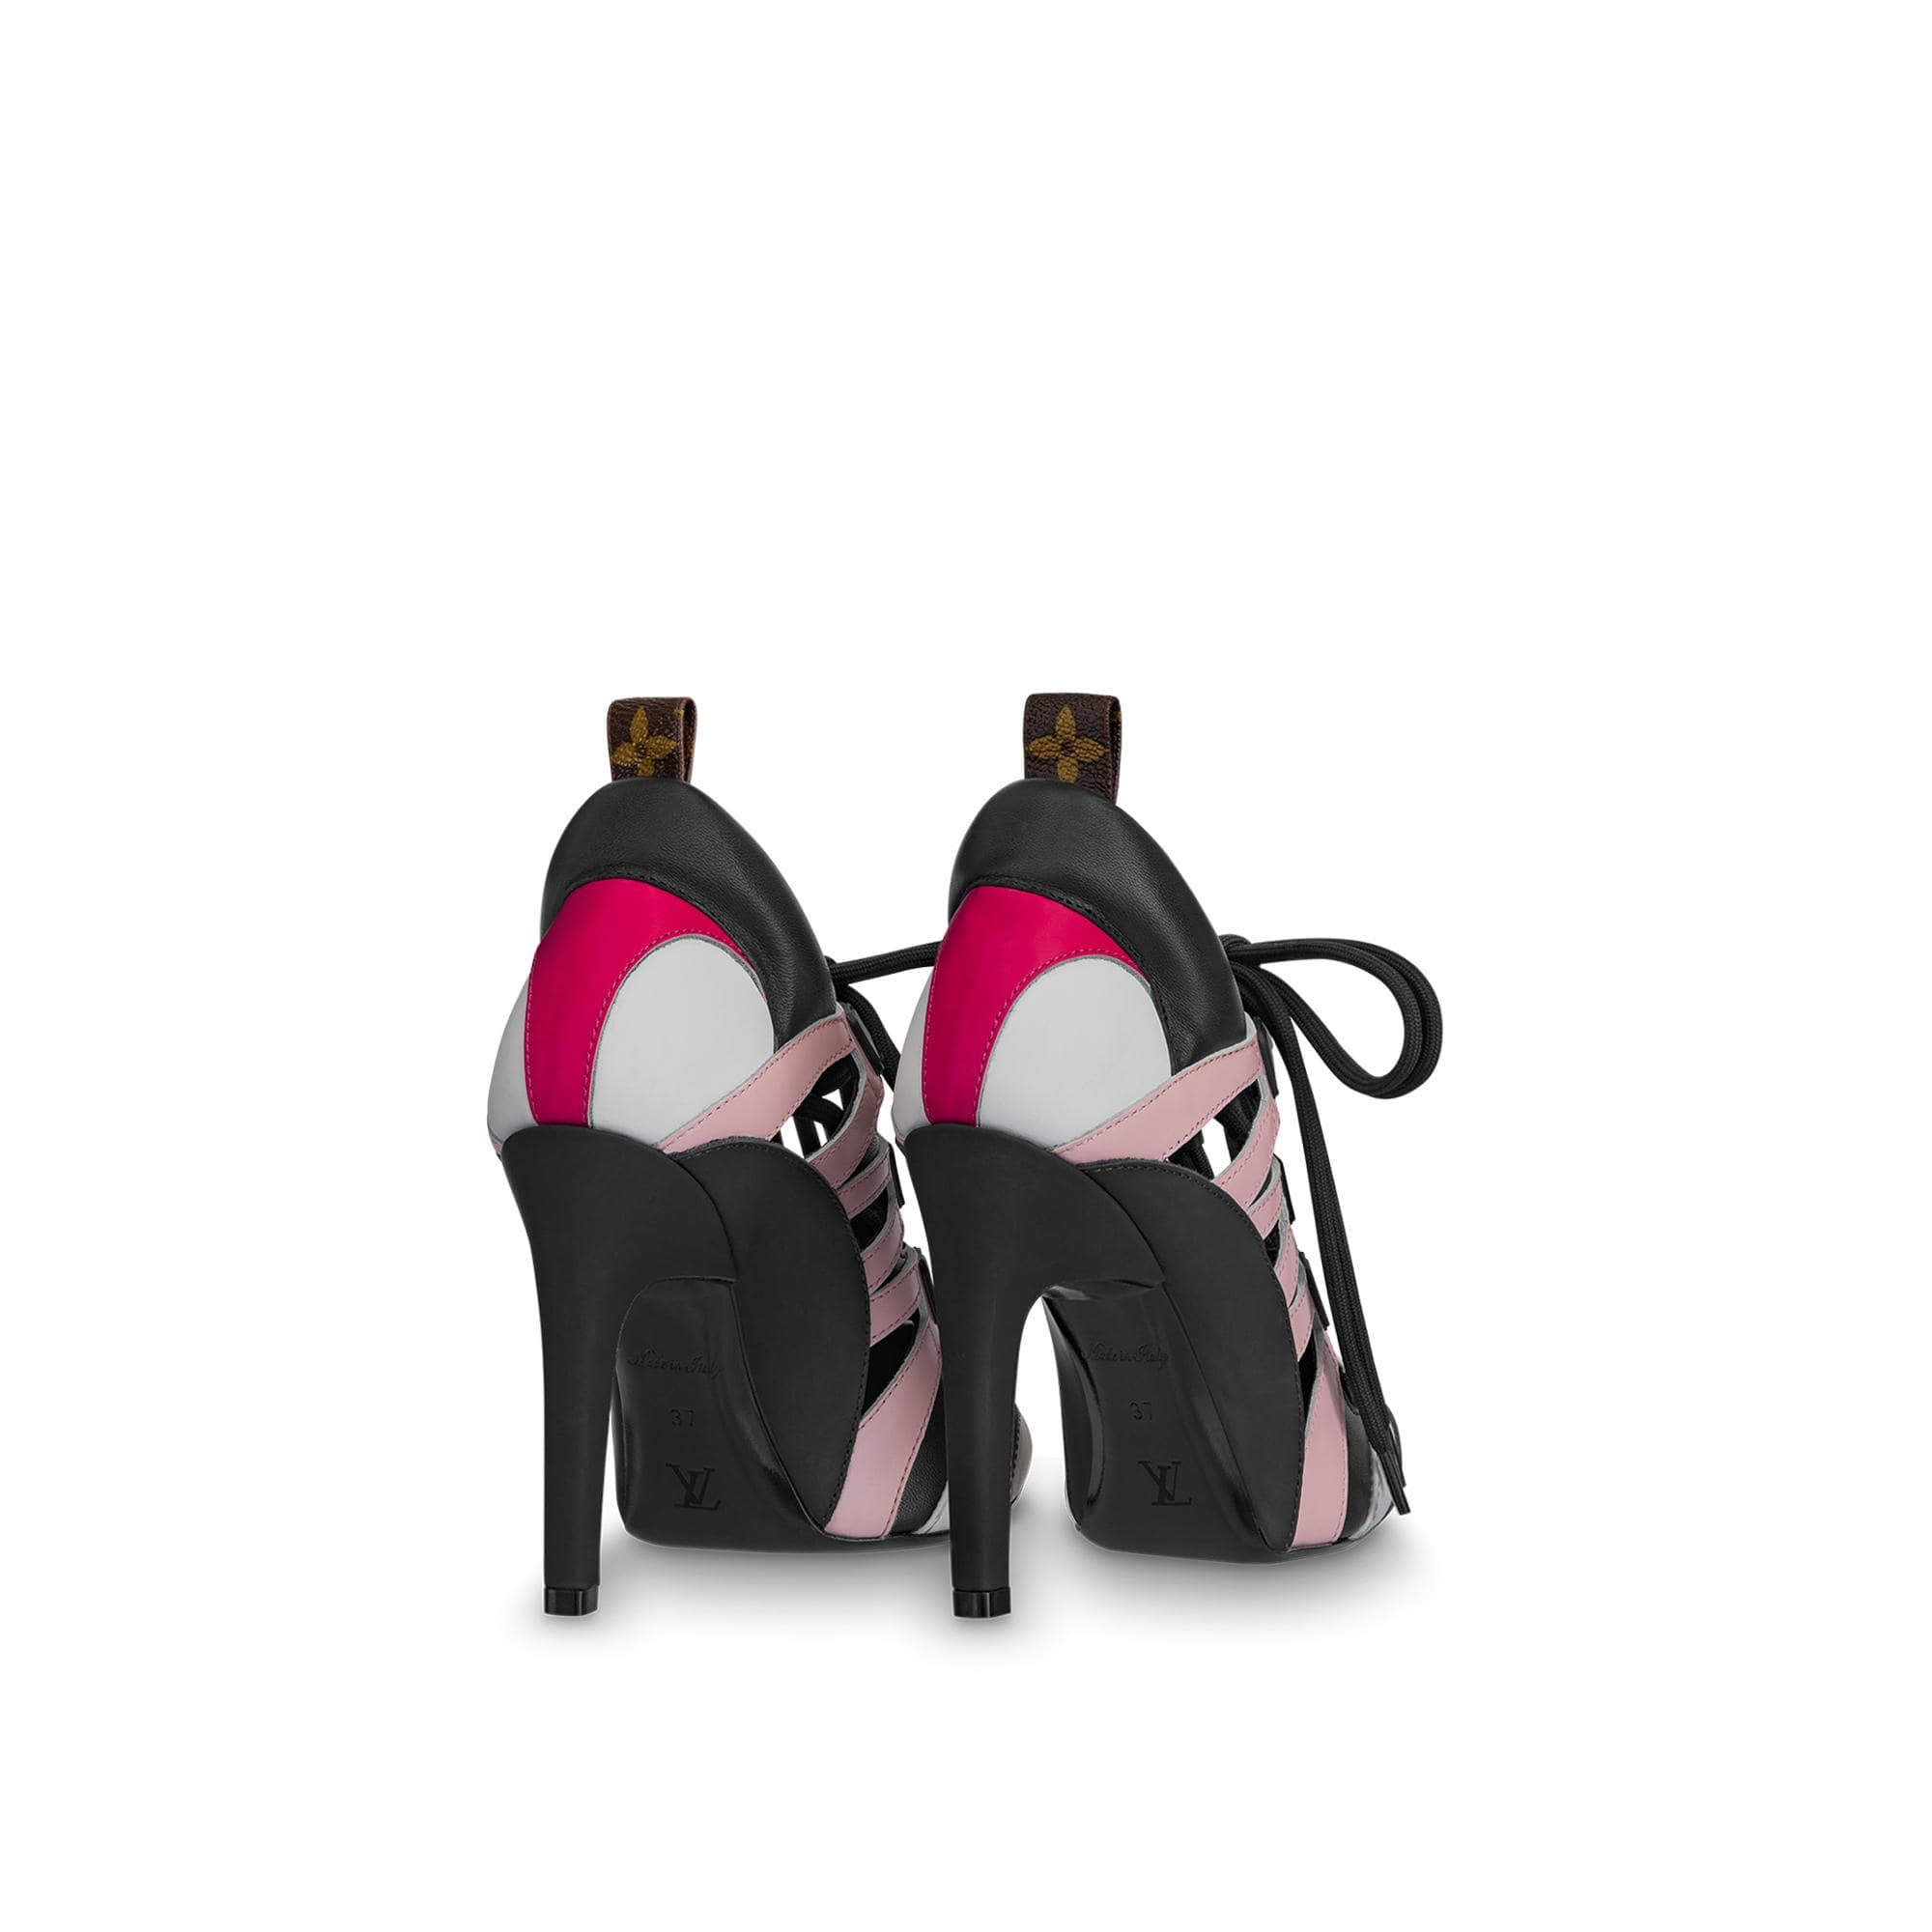 유럽직배송 루이비통 LOUIS VUITTON Streamline Stilettos 1A5LU9